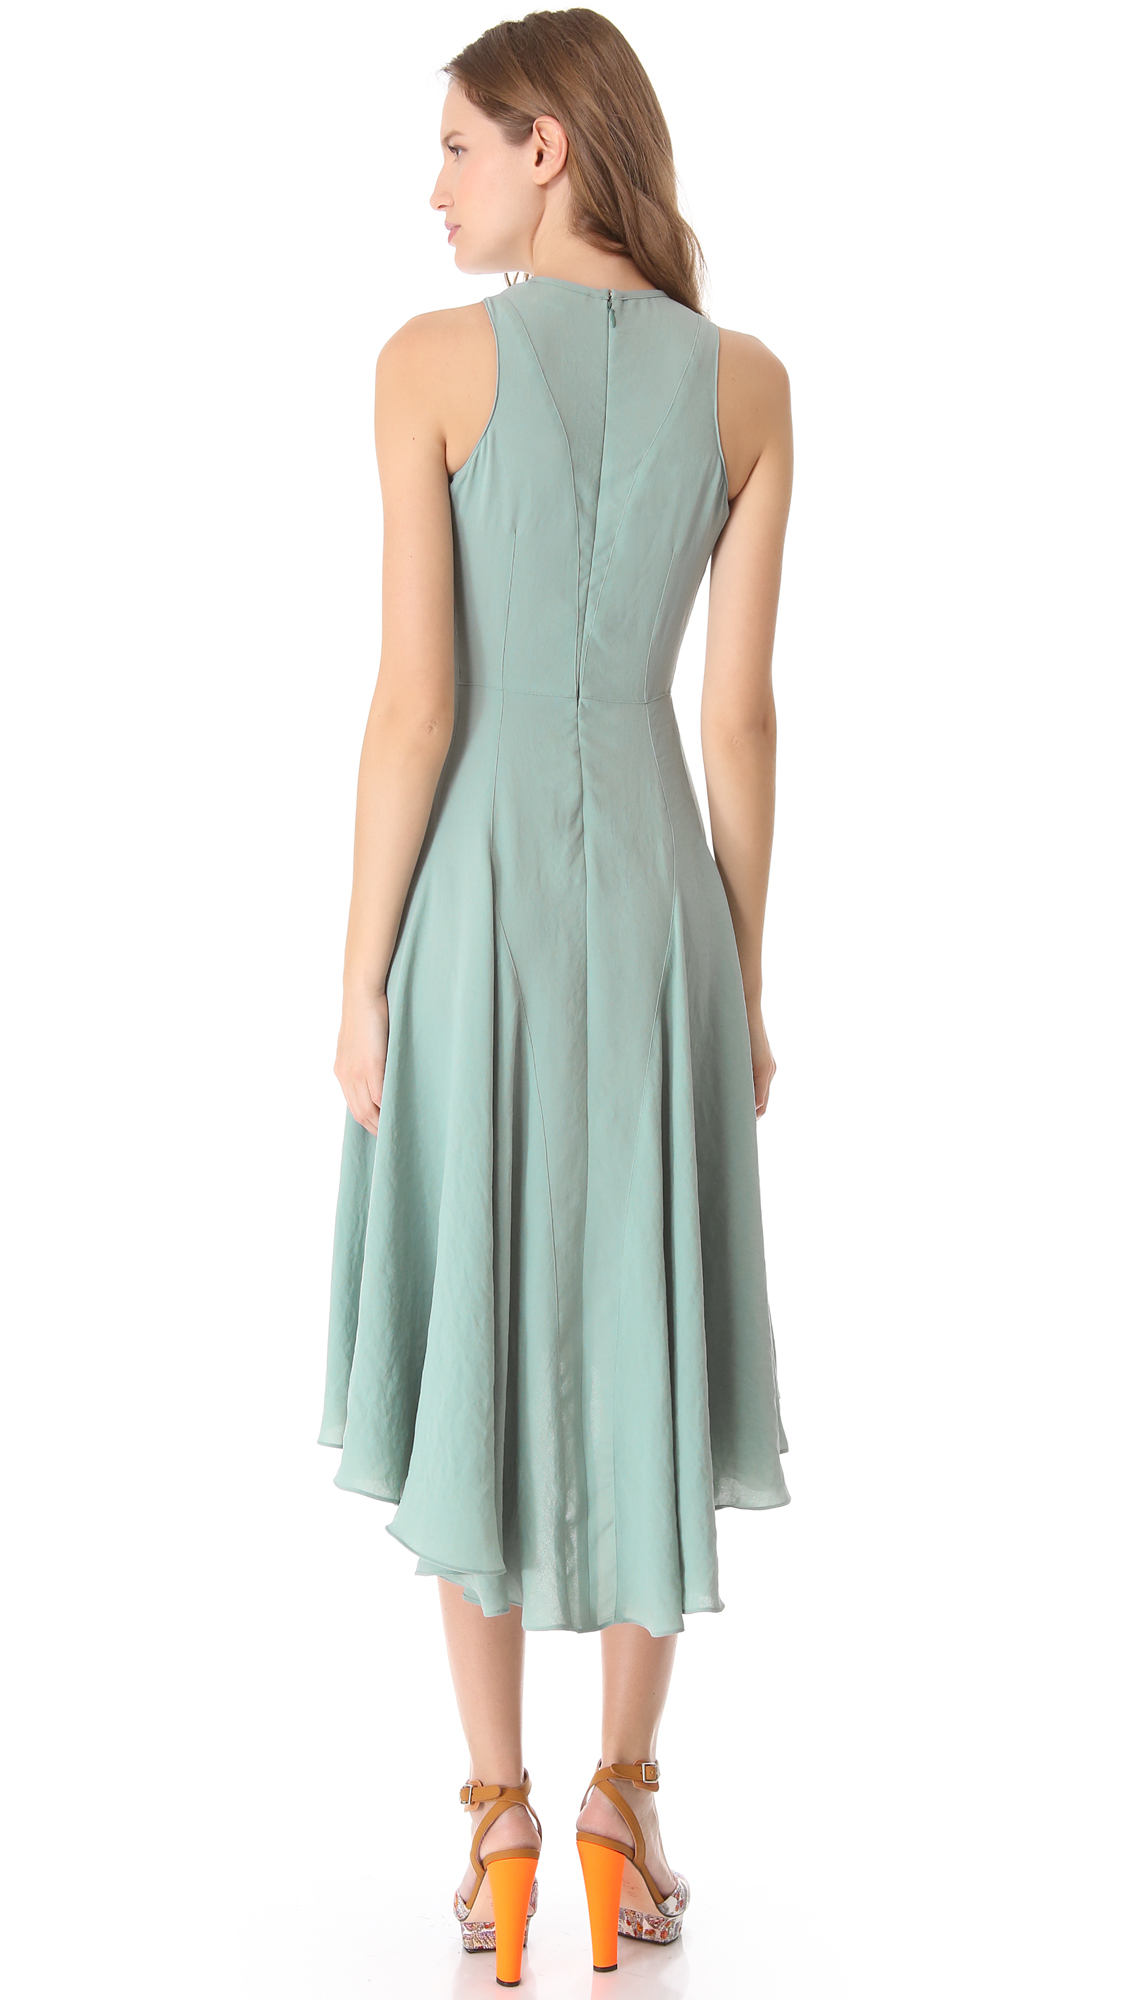 Lyst - Carven Sleeveless Crepe Dress in Blue